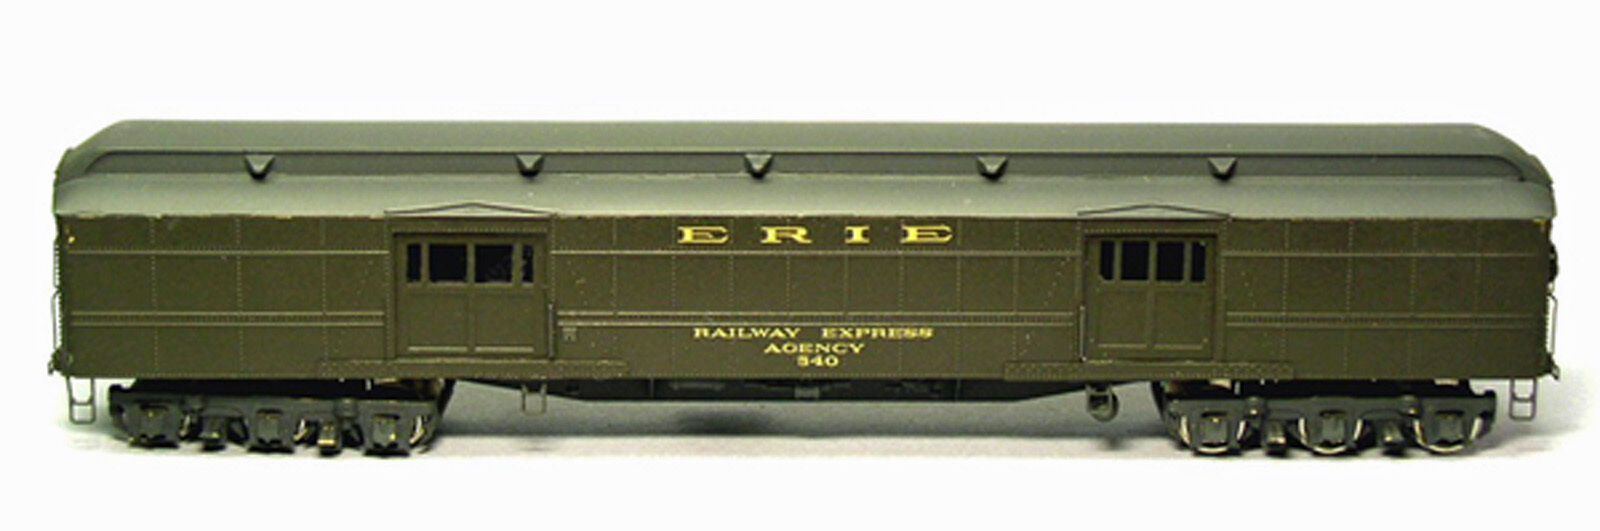 ERIE BAGGAGE EXPRESS CAR 540-549 HO Model Railroad Passenger Unpainted Kit BC830